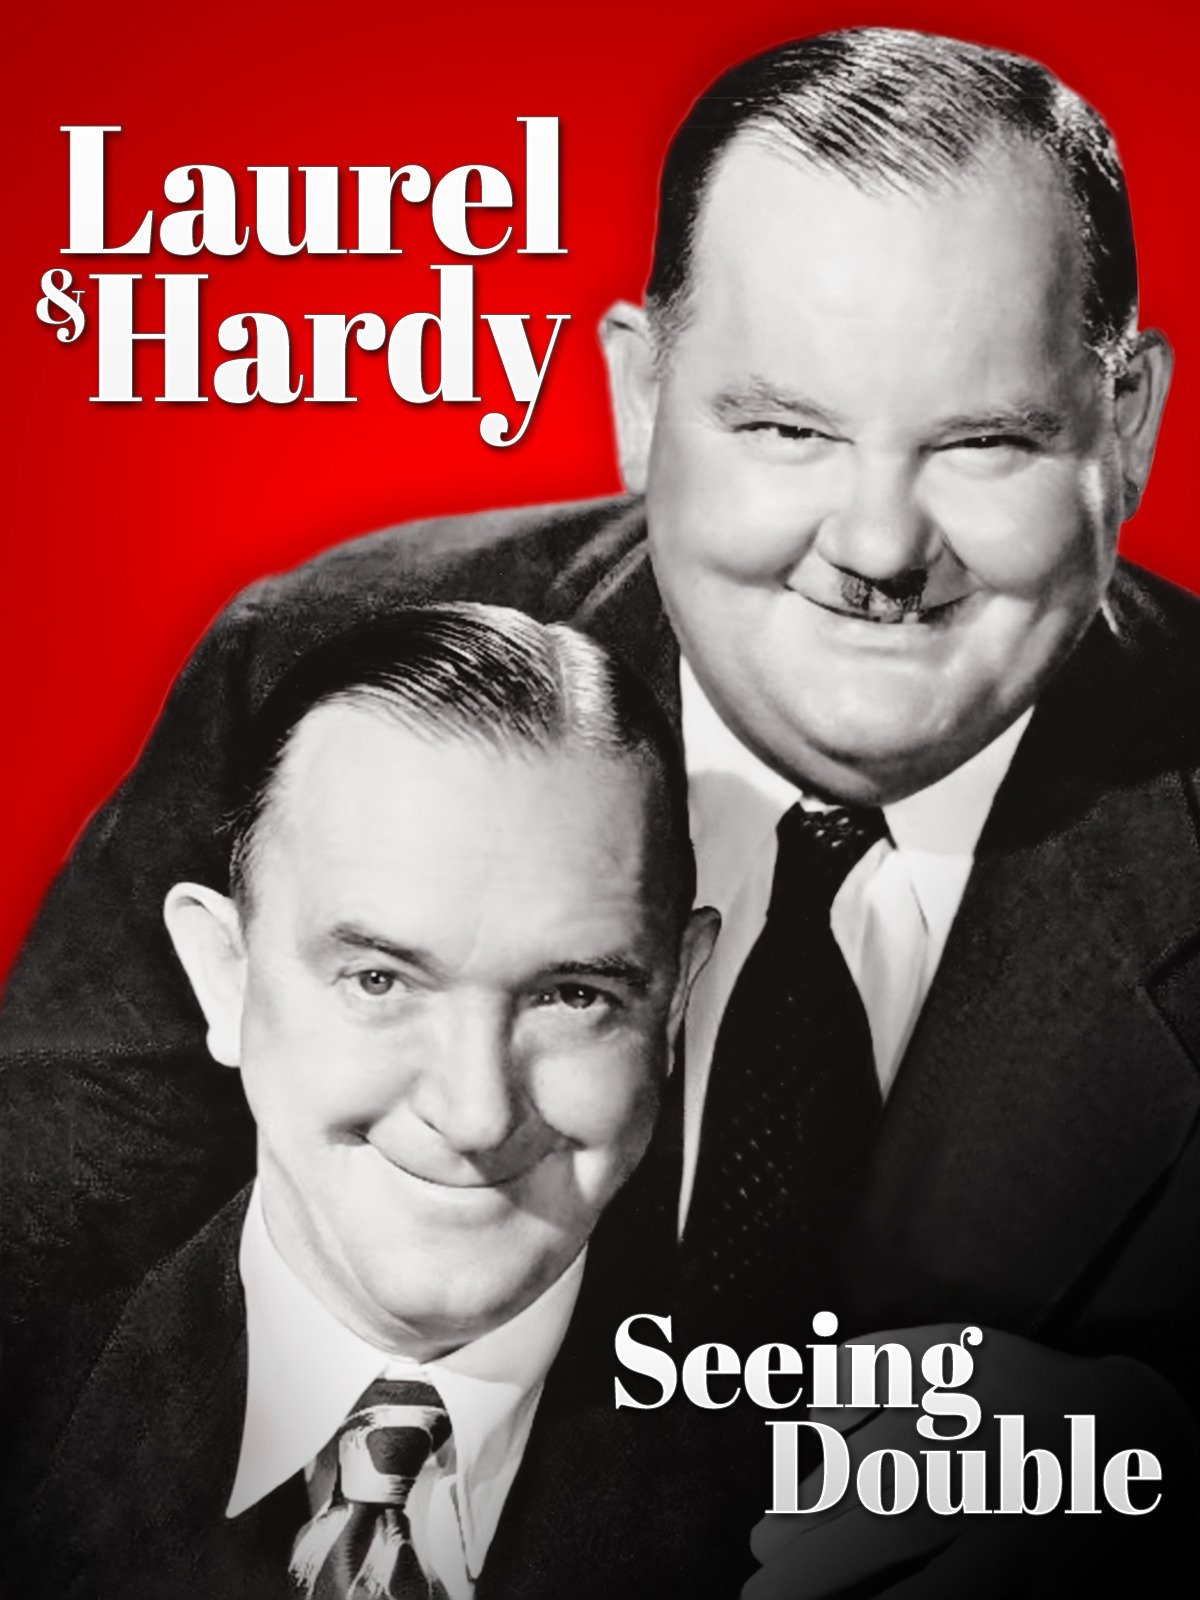 Amazon.com: Laurel & Hardy: Seeing Double: Stan Laurel, Oliver Hardy ...